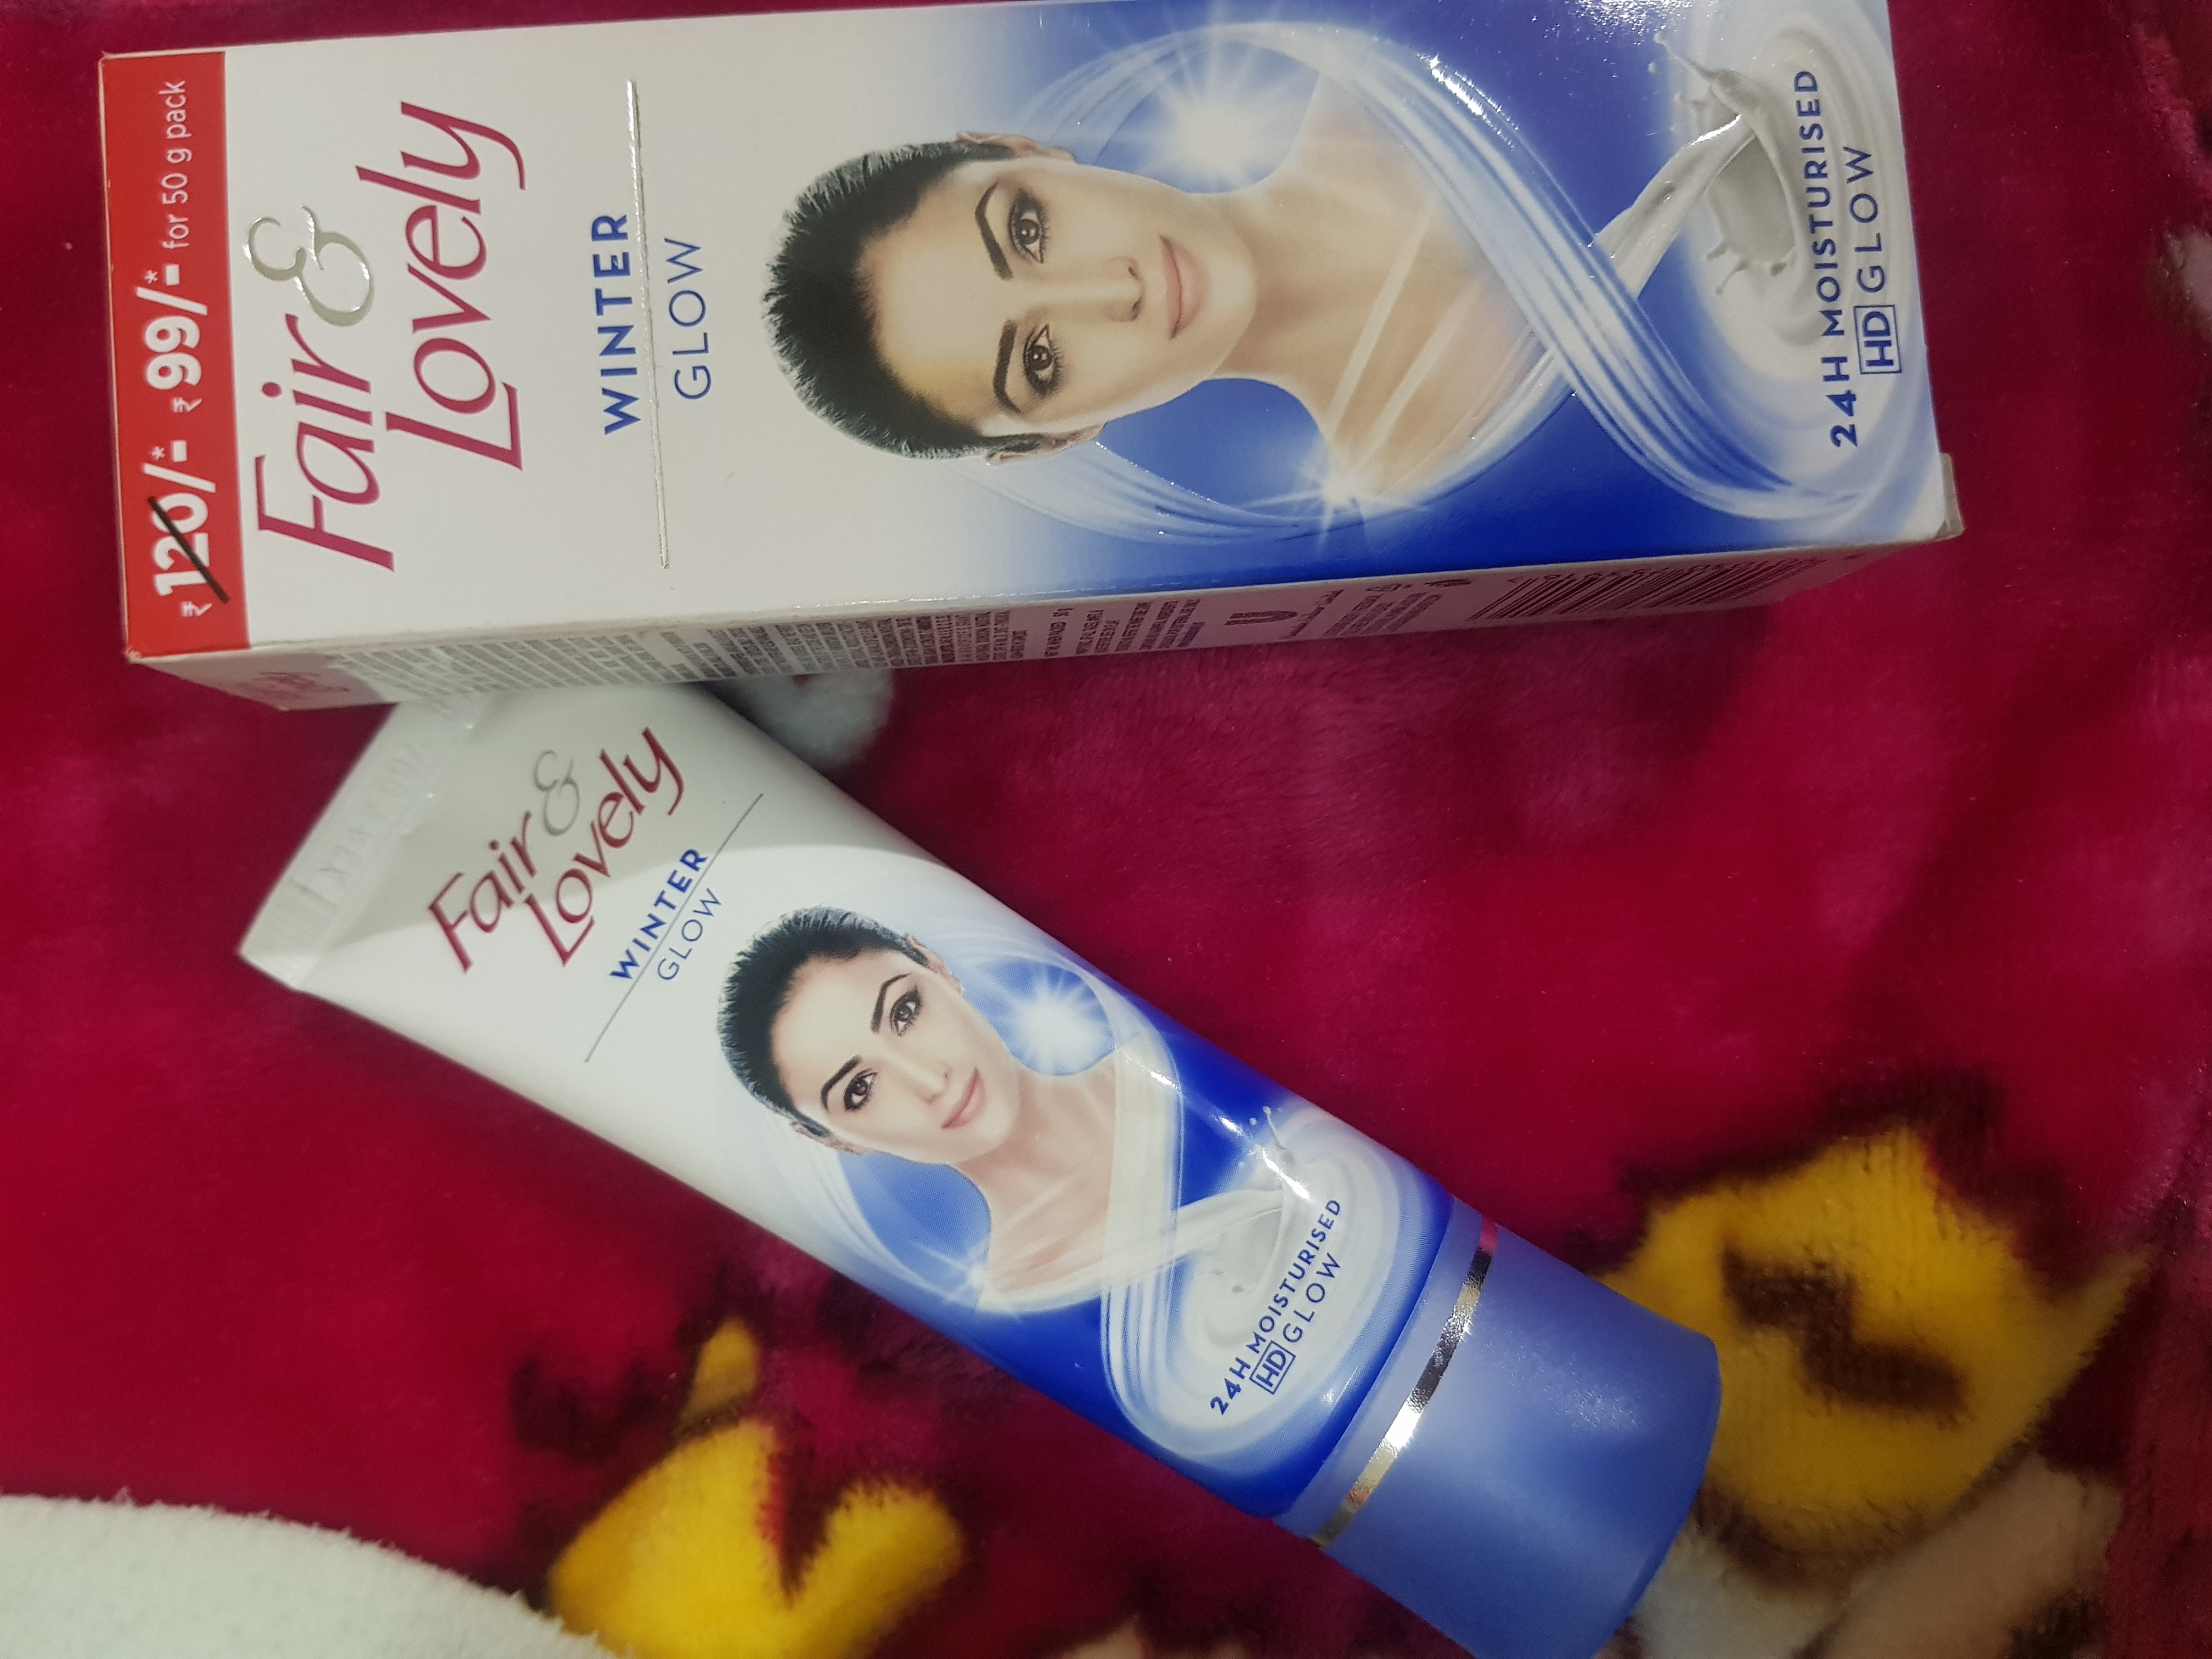 Fair & Lovely Winter Fairness Cream-Winter Fairness Cream!-By poonam_kakkar